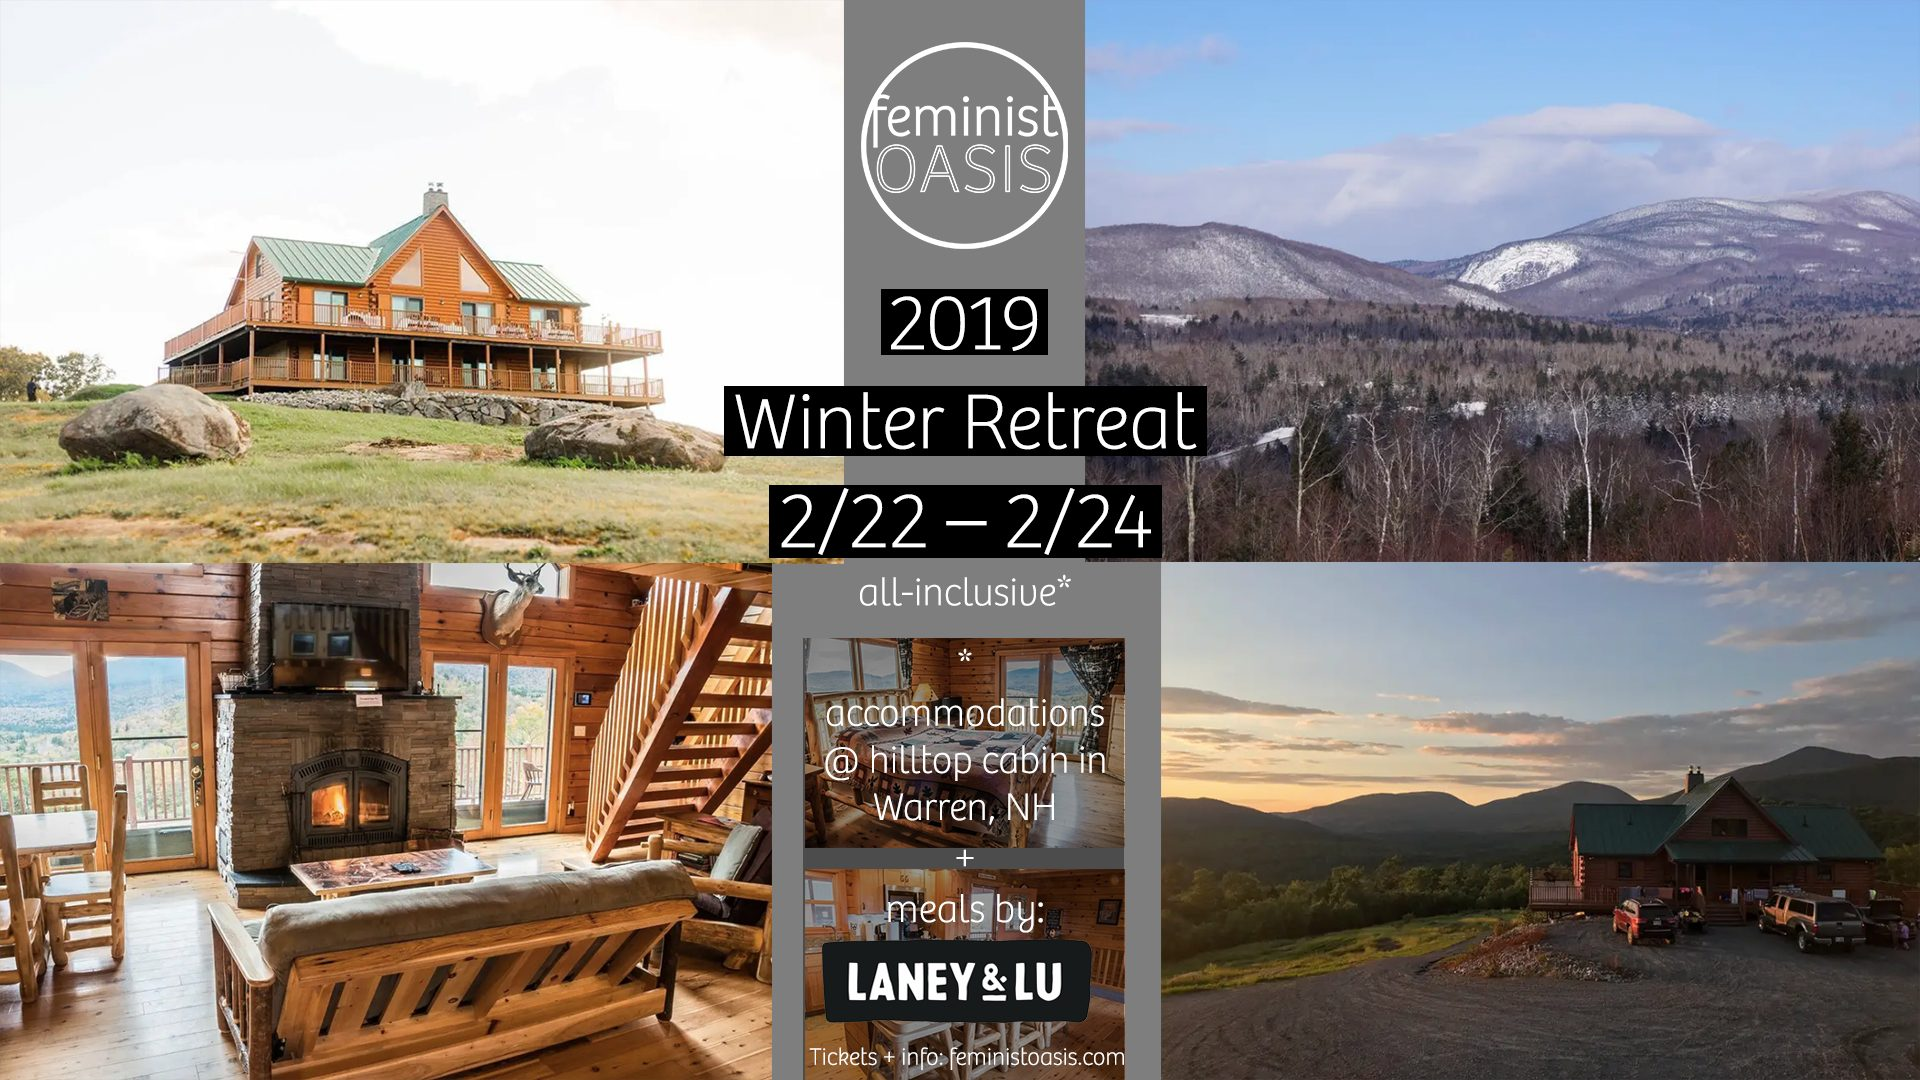 Announcing our 2019 Winter Retreat (check out these views!)